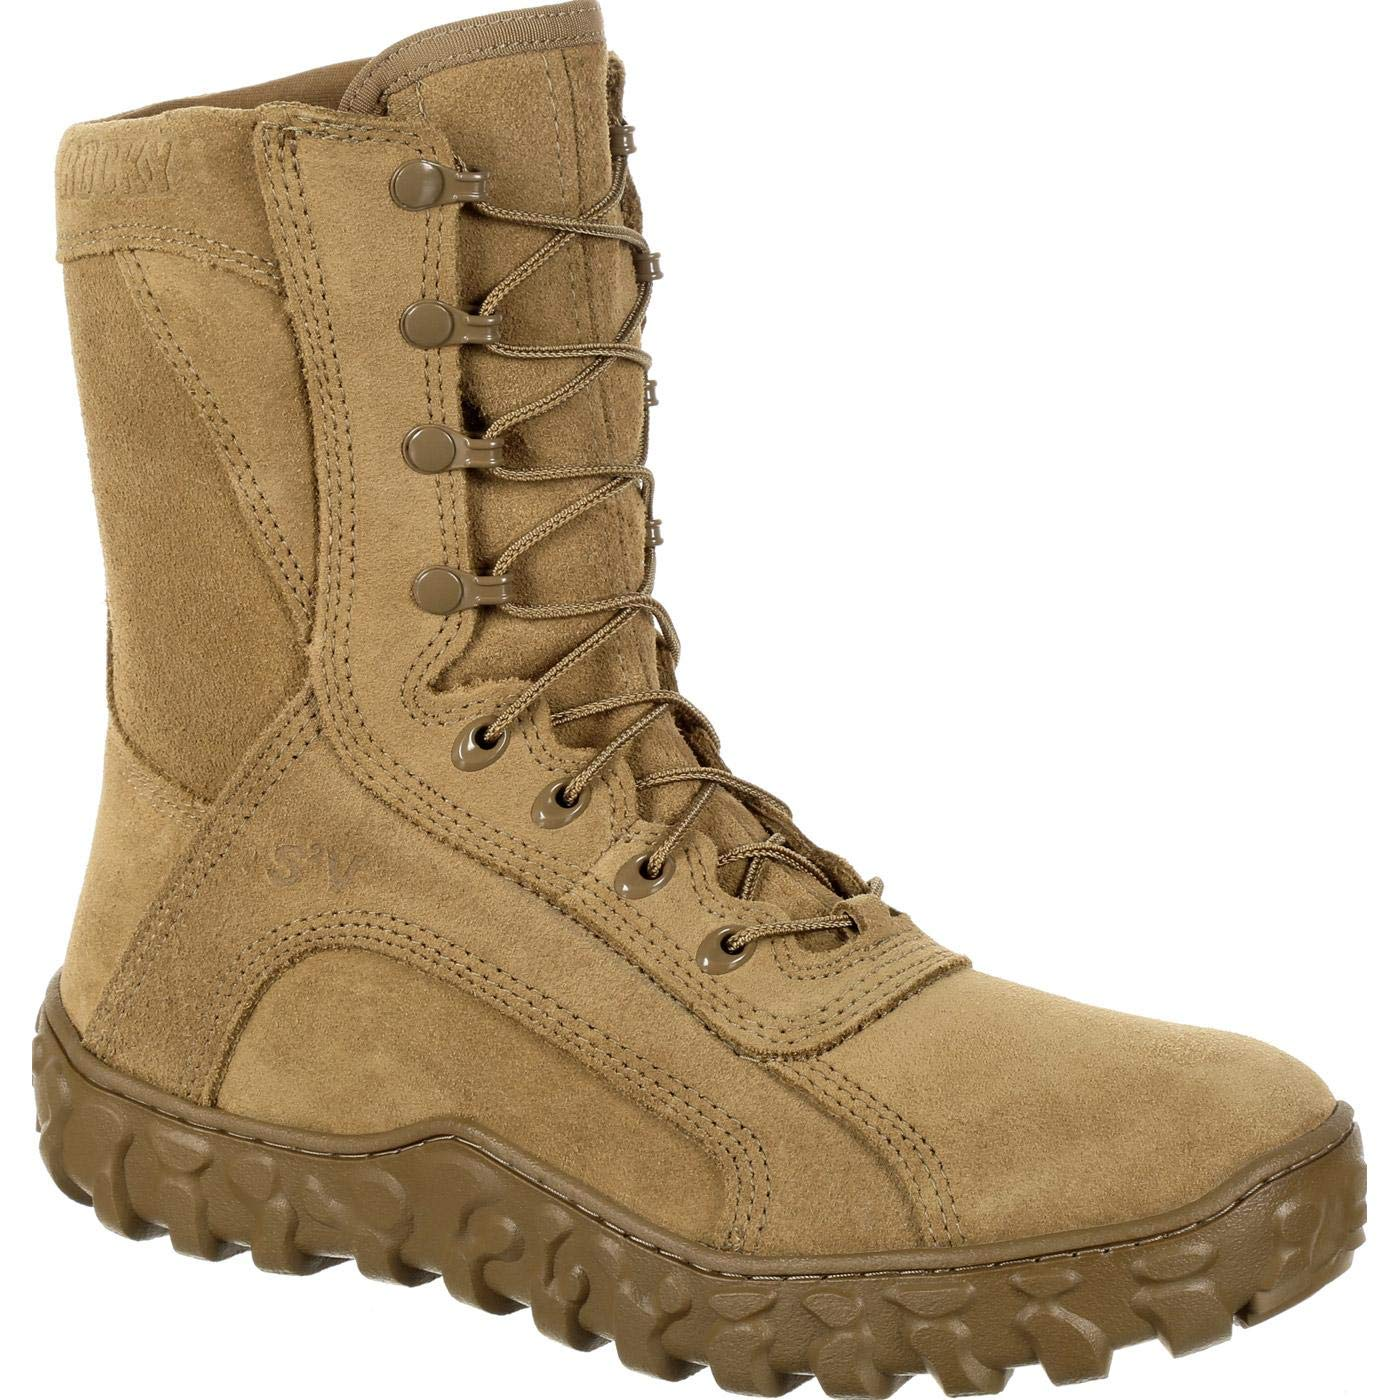 Rocky Men's 8'' S2V Tactical Military Boots, Tan, 11 M by ROCKY